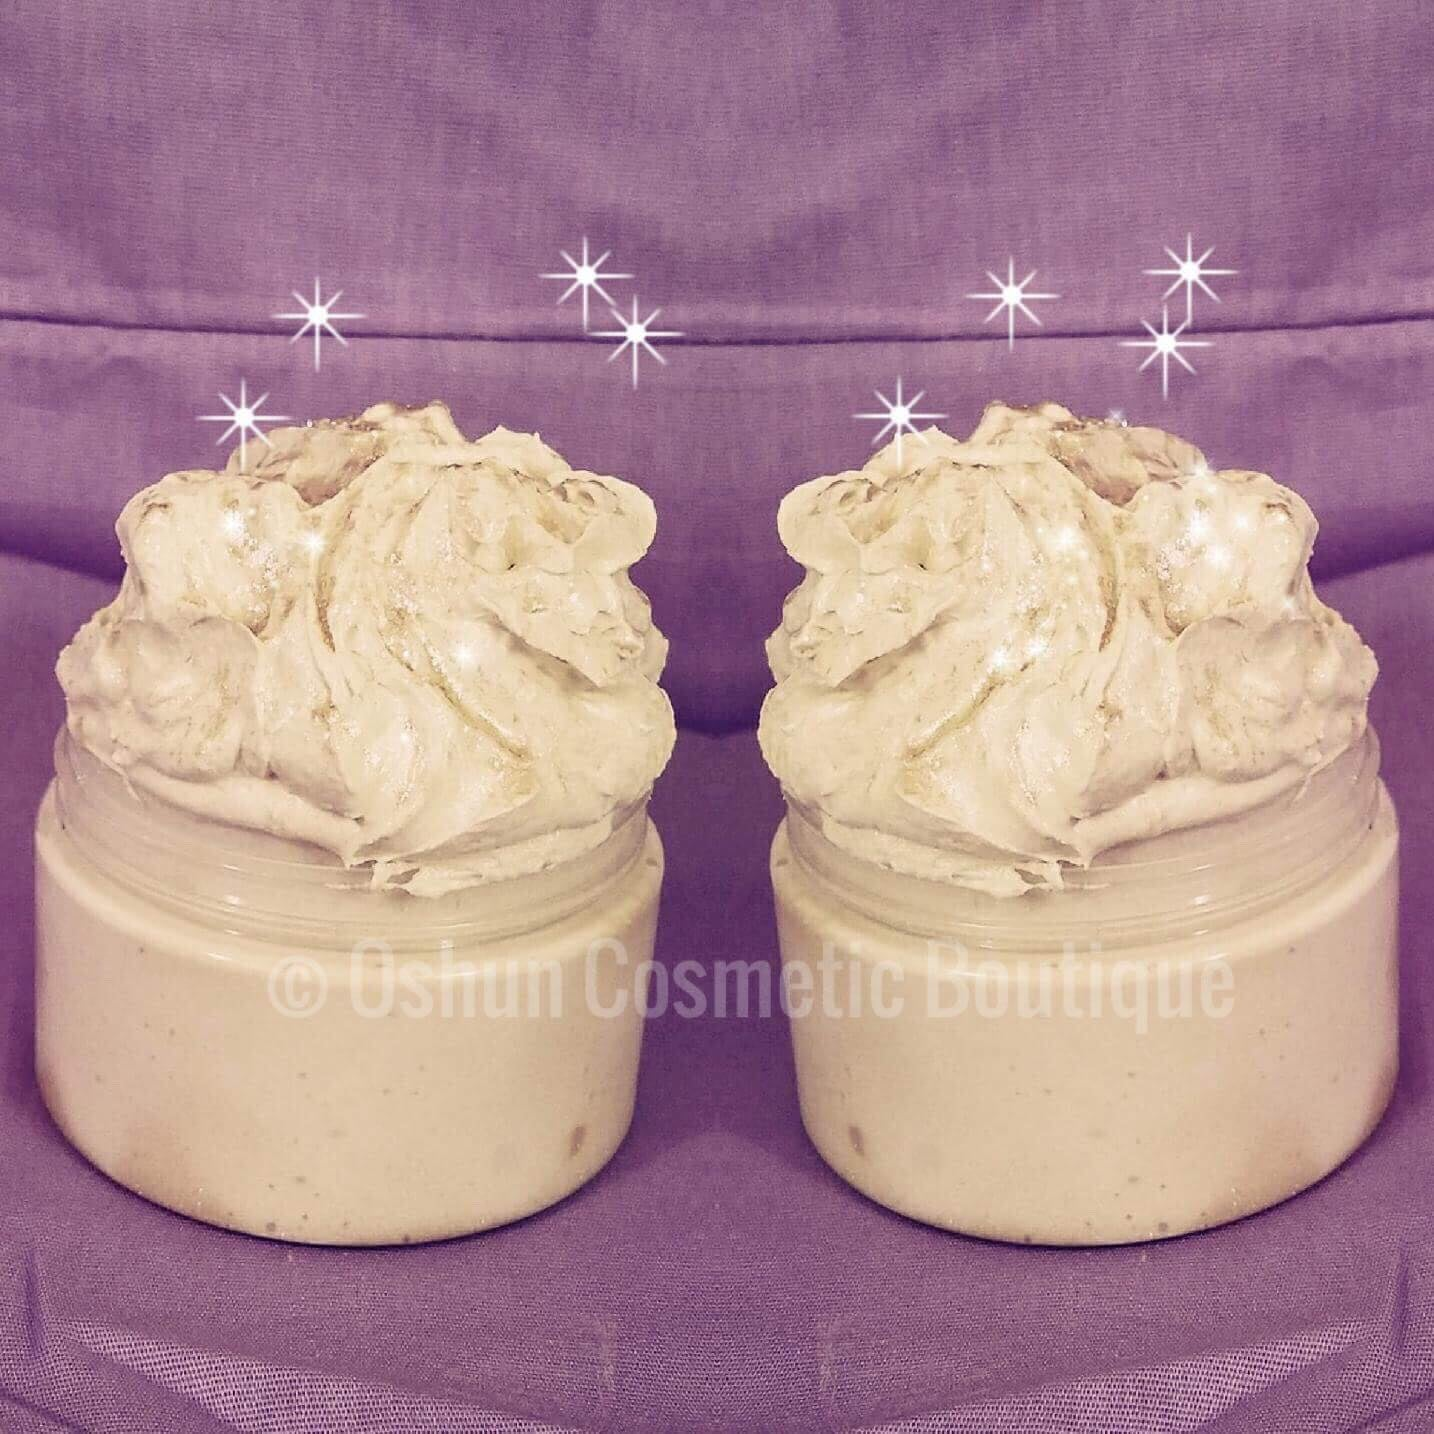 Image of Whipped by Fene' 4oz Galaxy